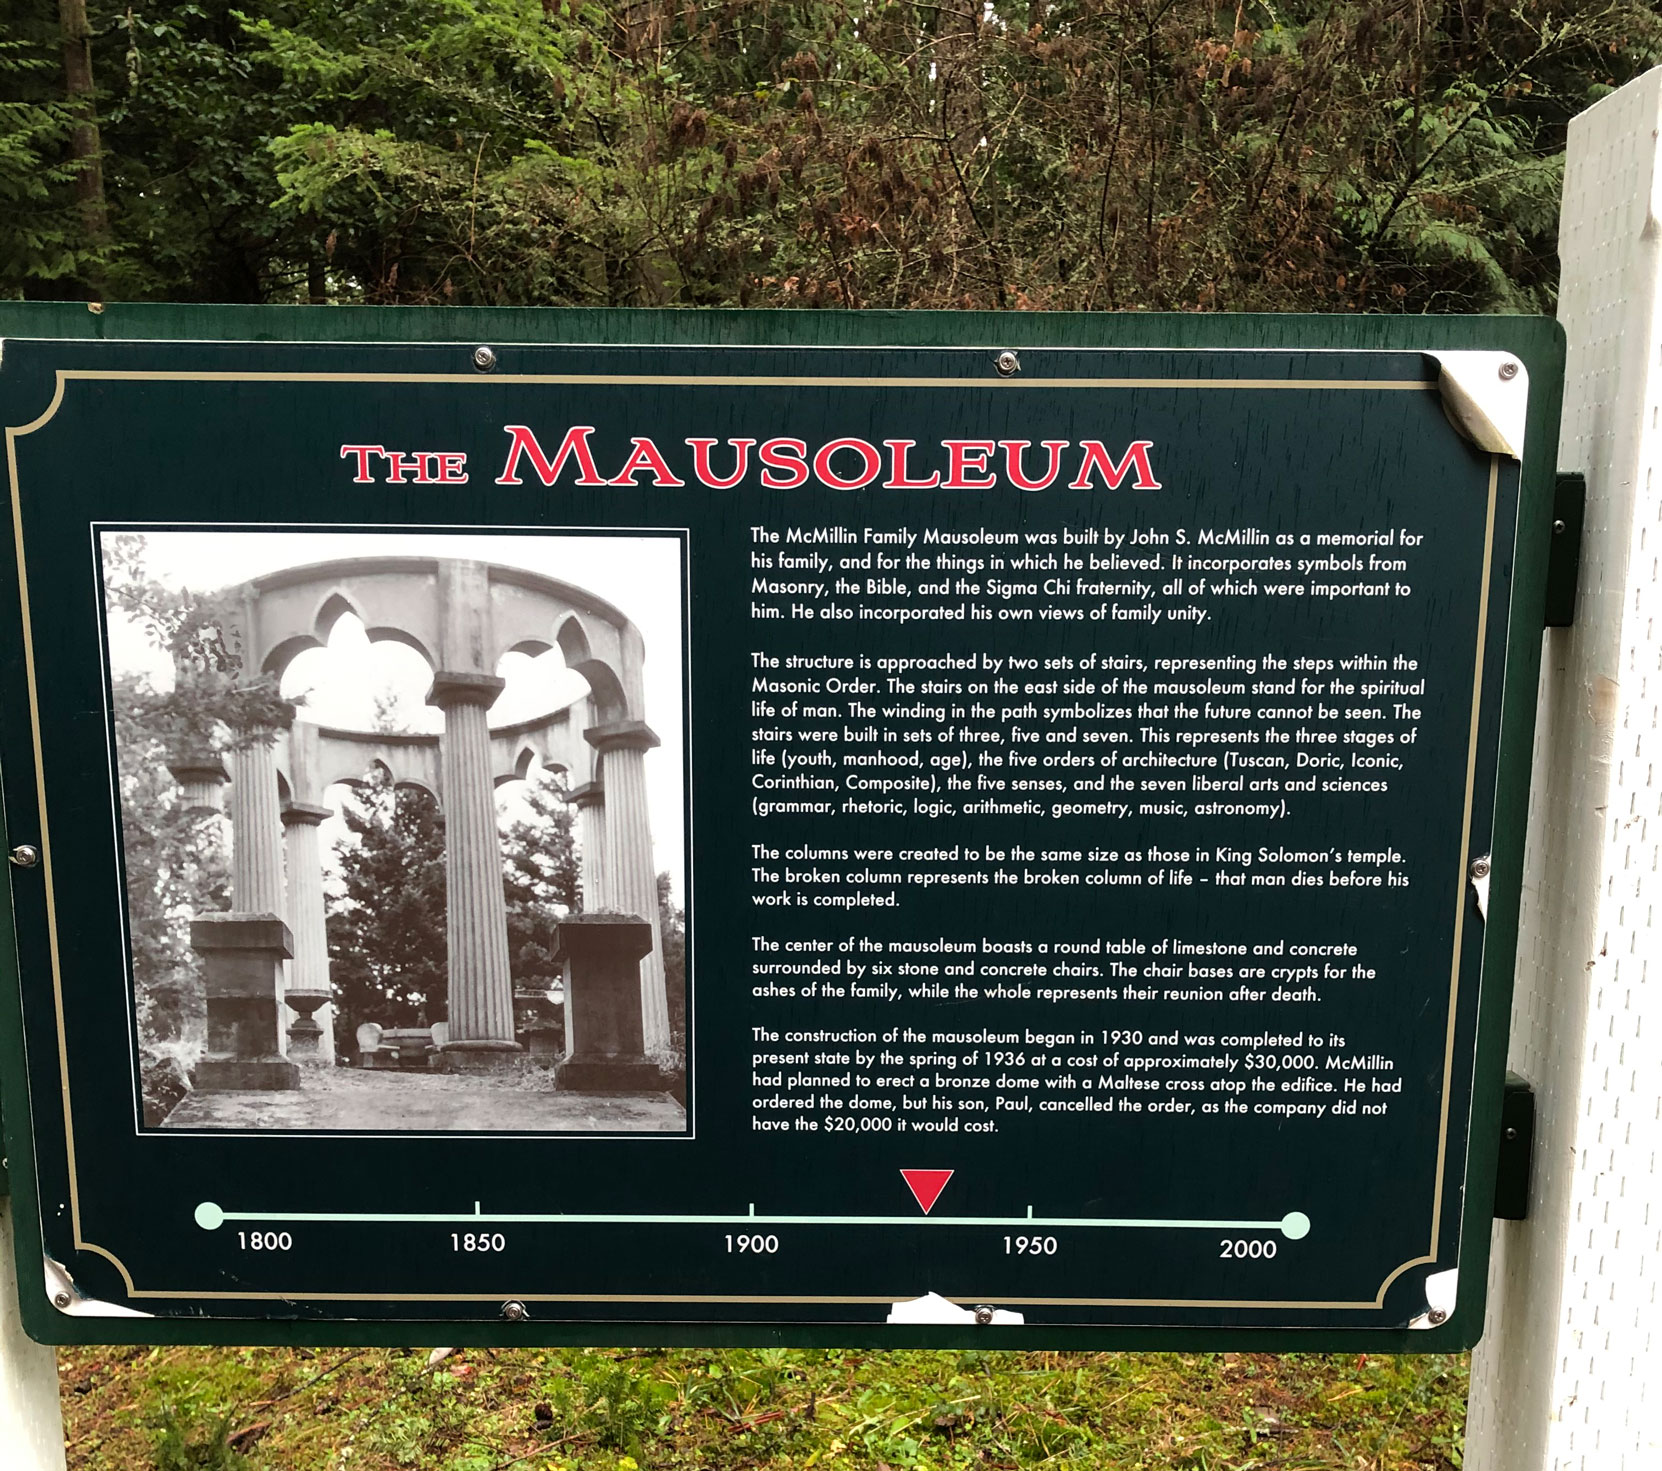 McMillin Mausoleum information plaque, Roche Harbor, Washington (photo by Mike Gains, V&Q, No.2)